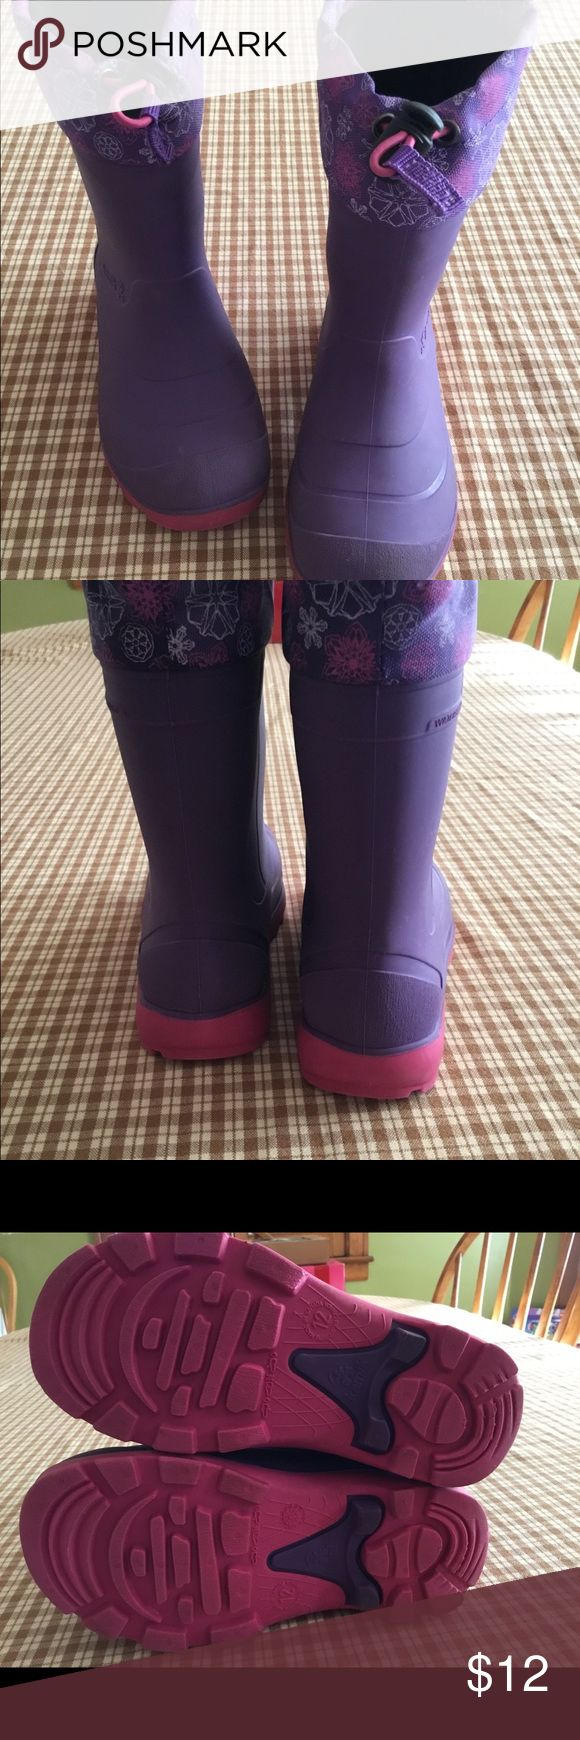 Girls Kamik Snow Boots Kids winter boots, size 12. Comes from a non smoking home. Kamik Shoes Winter & Rain Boots